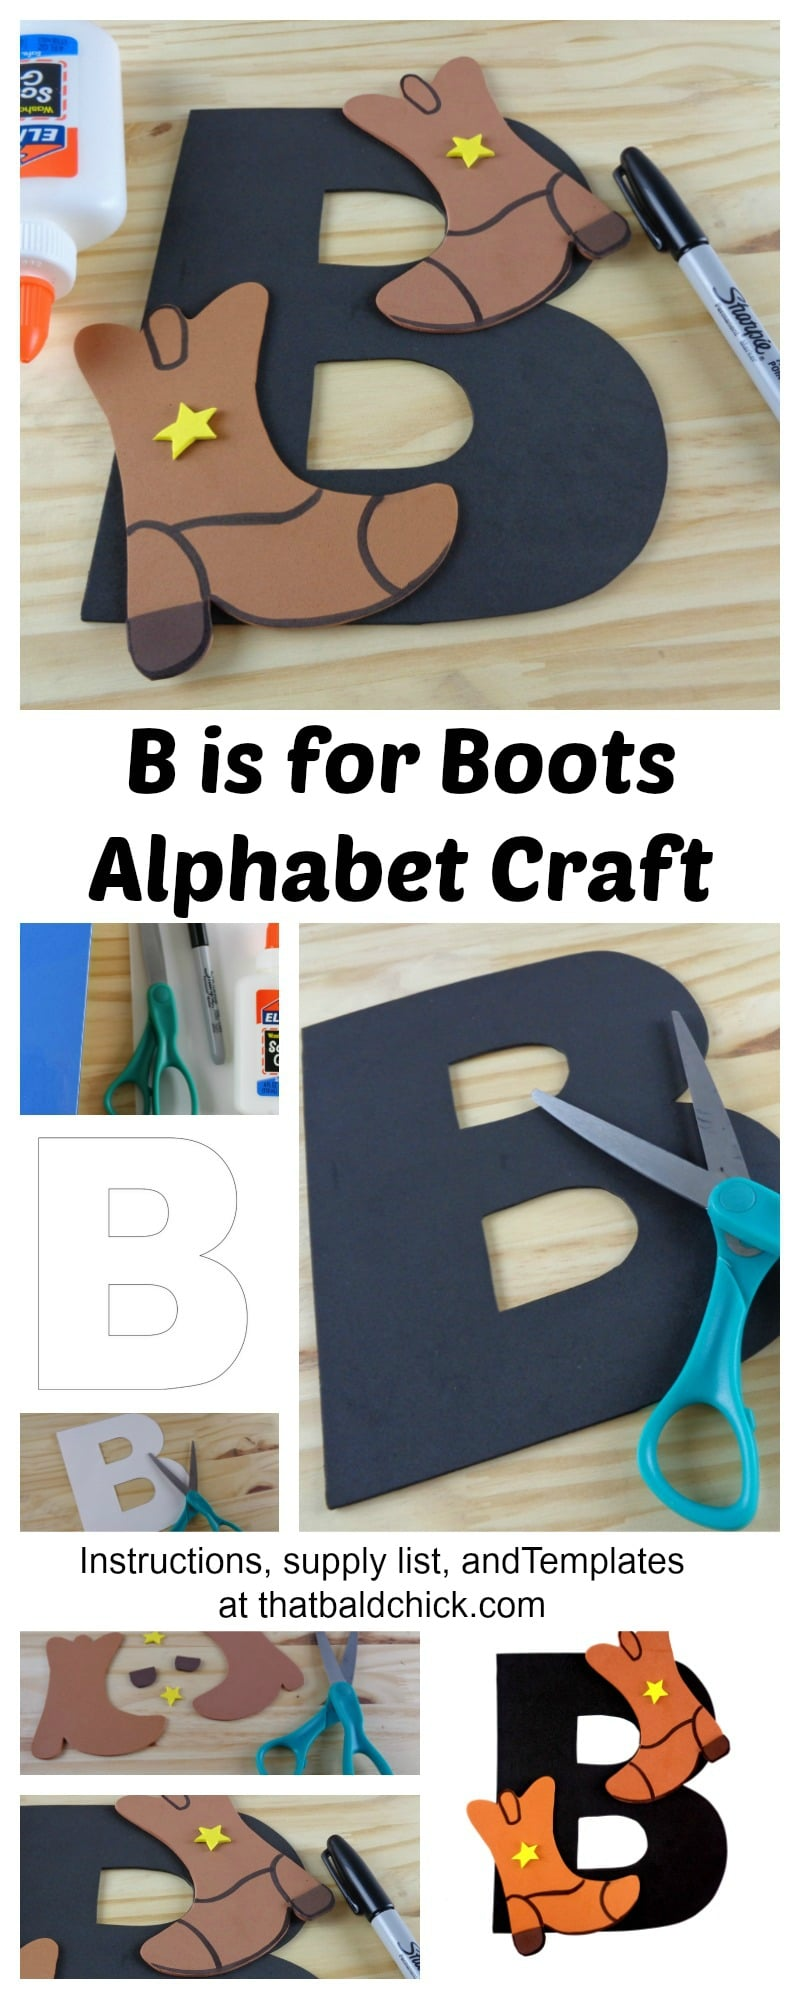 Get the instructions, supply list, and templates for this B is for Boots Alphabet Craft at thatbaldchick.com